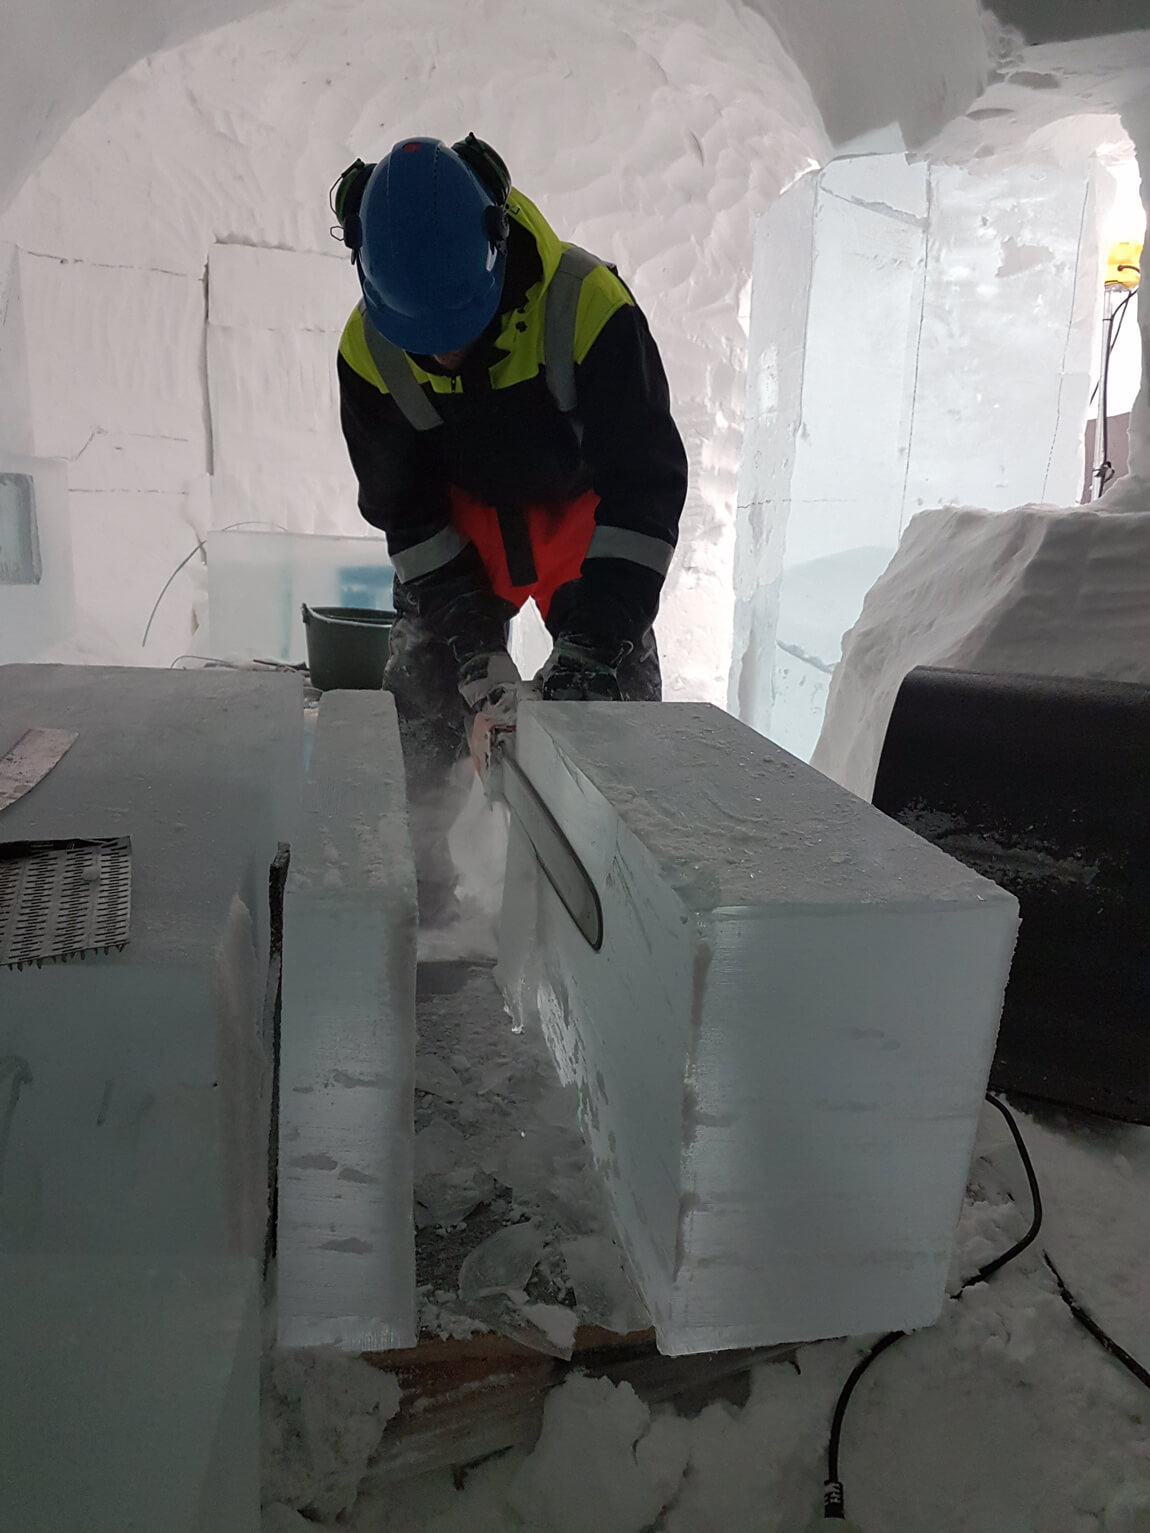 Building the ICEHOTEL involves sawing 200kg ice blocks that have come from the nearby river. They are cut up with chain saws and then cleaned up.